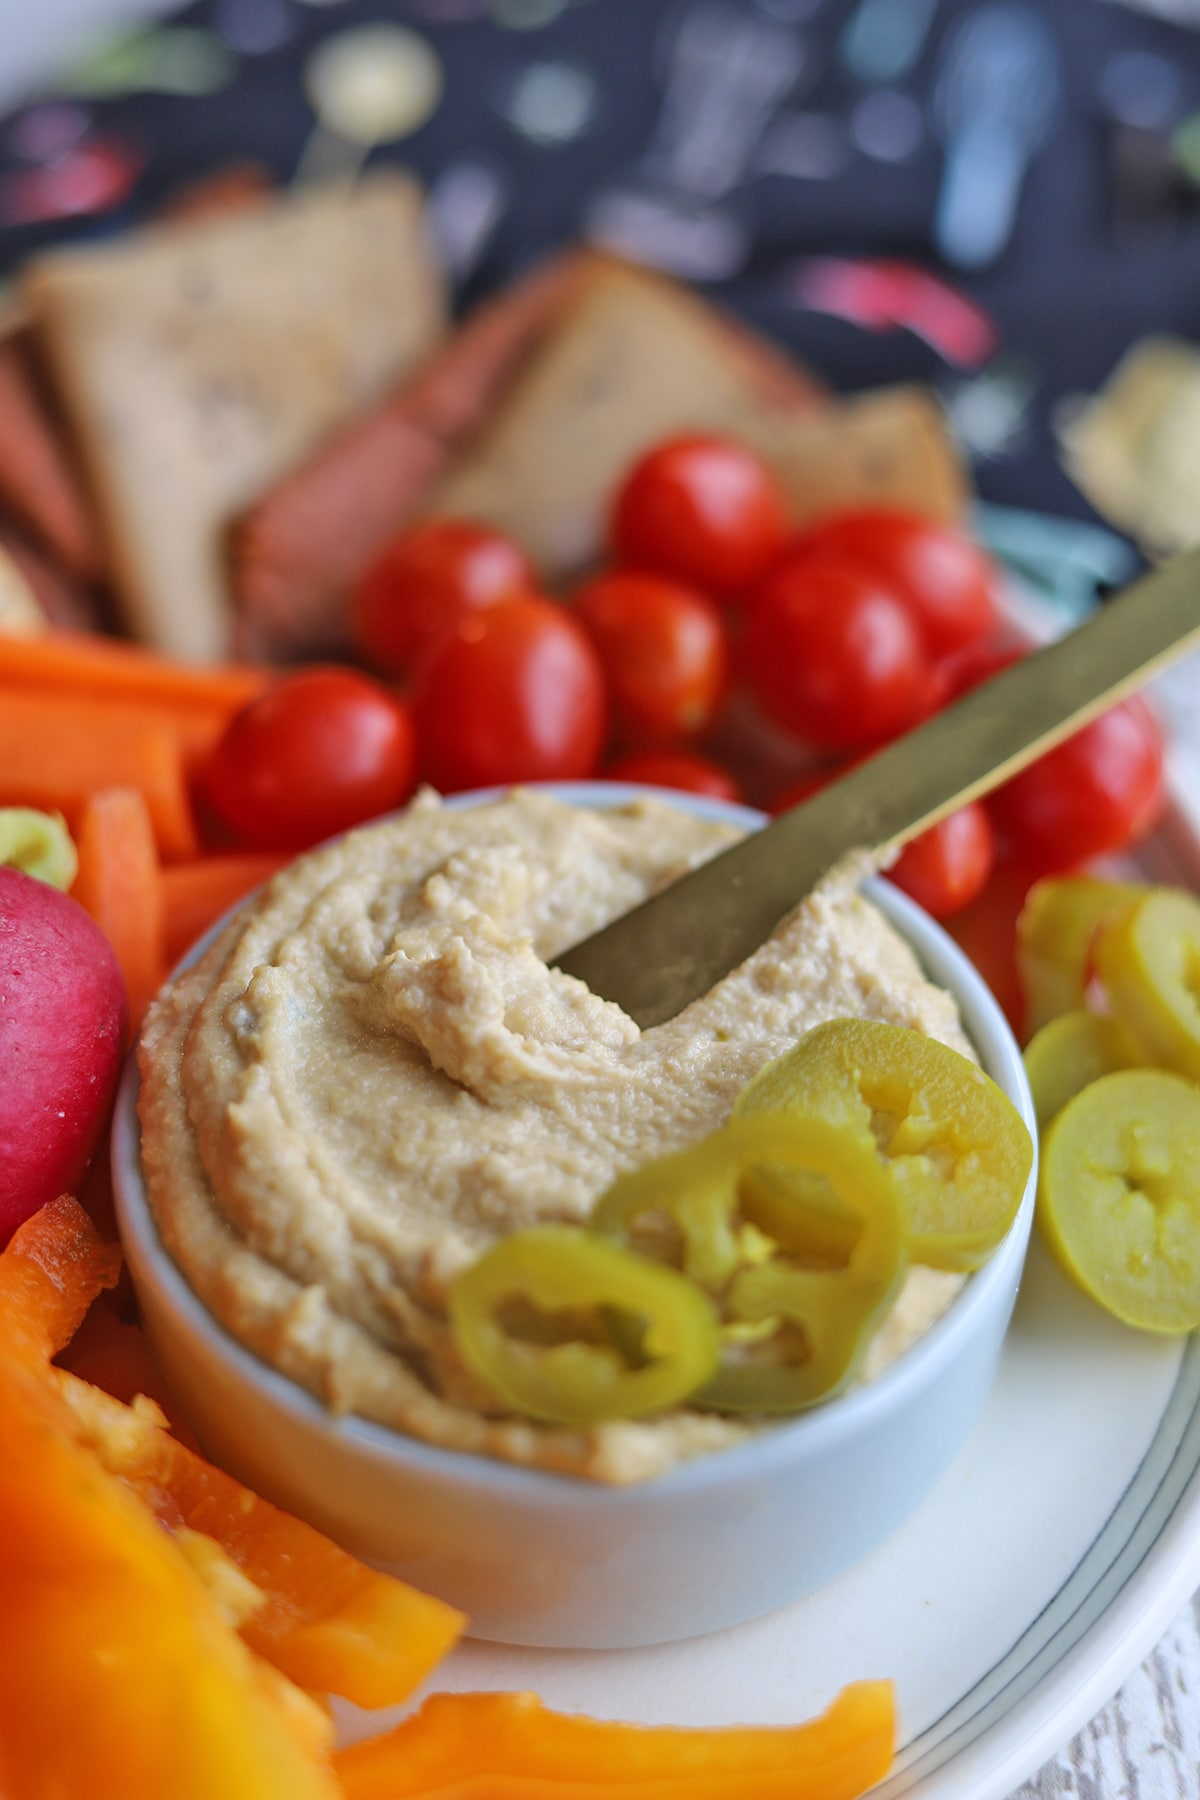 Knife in jalapeno cashew cheese spread on platter.